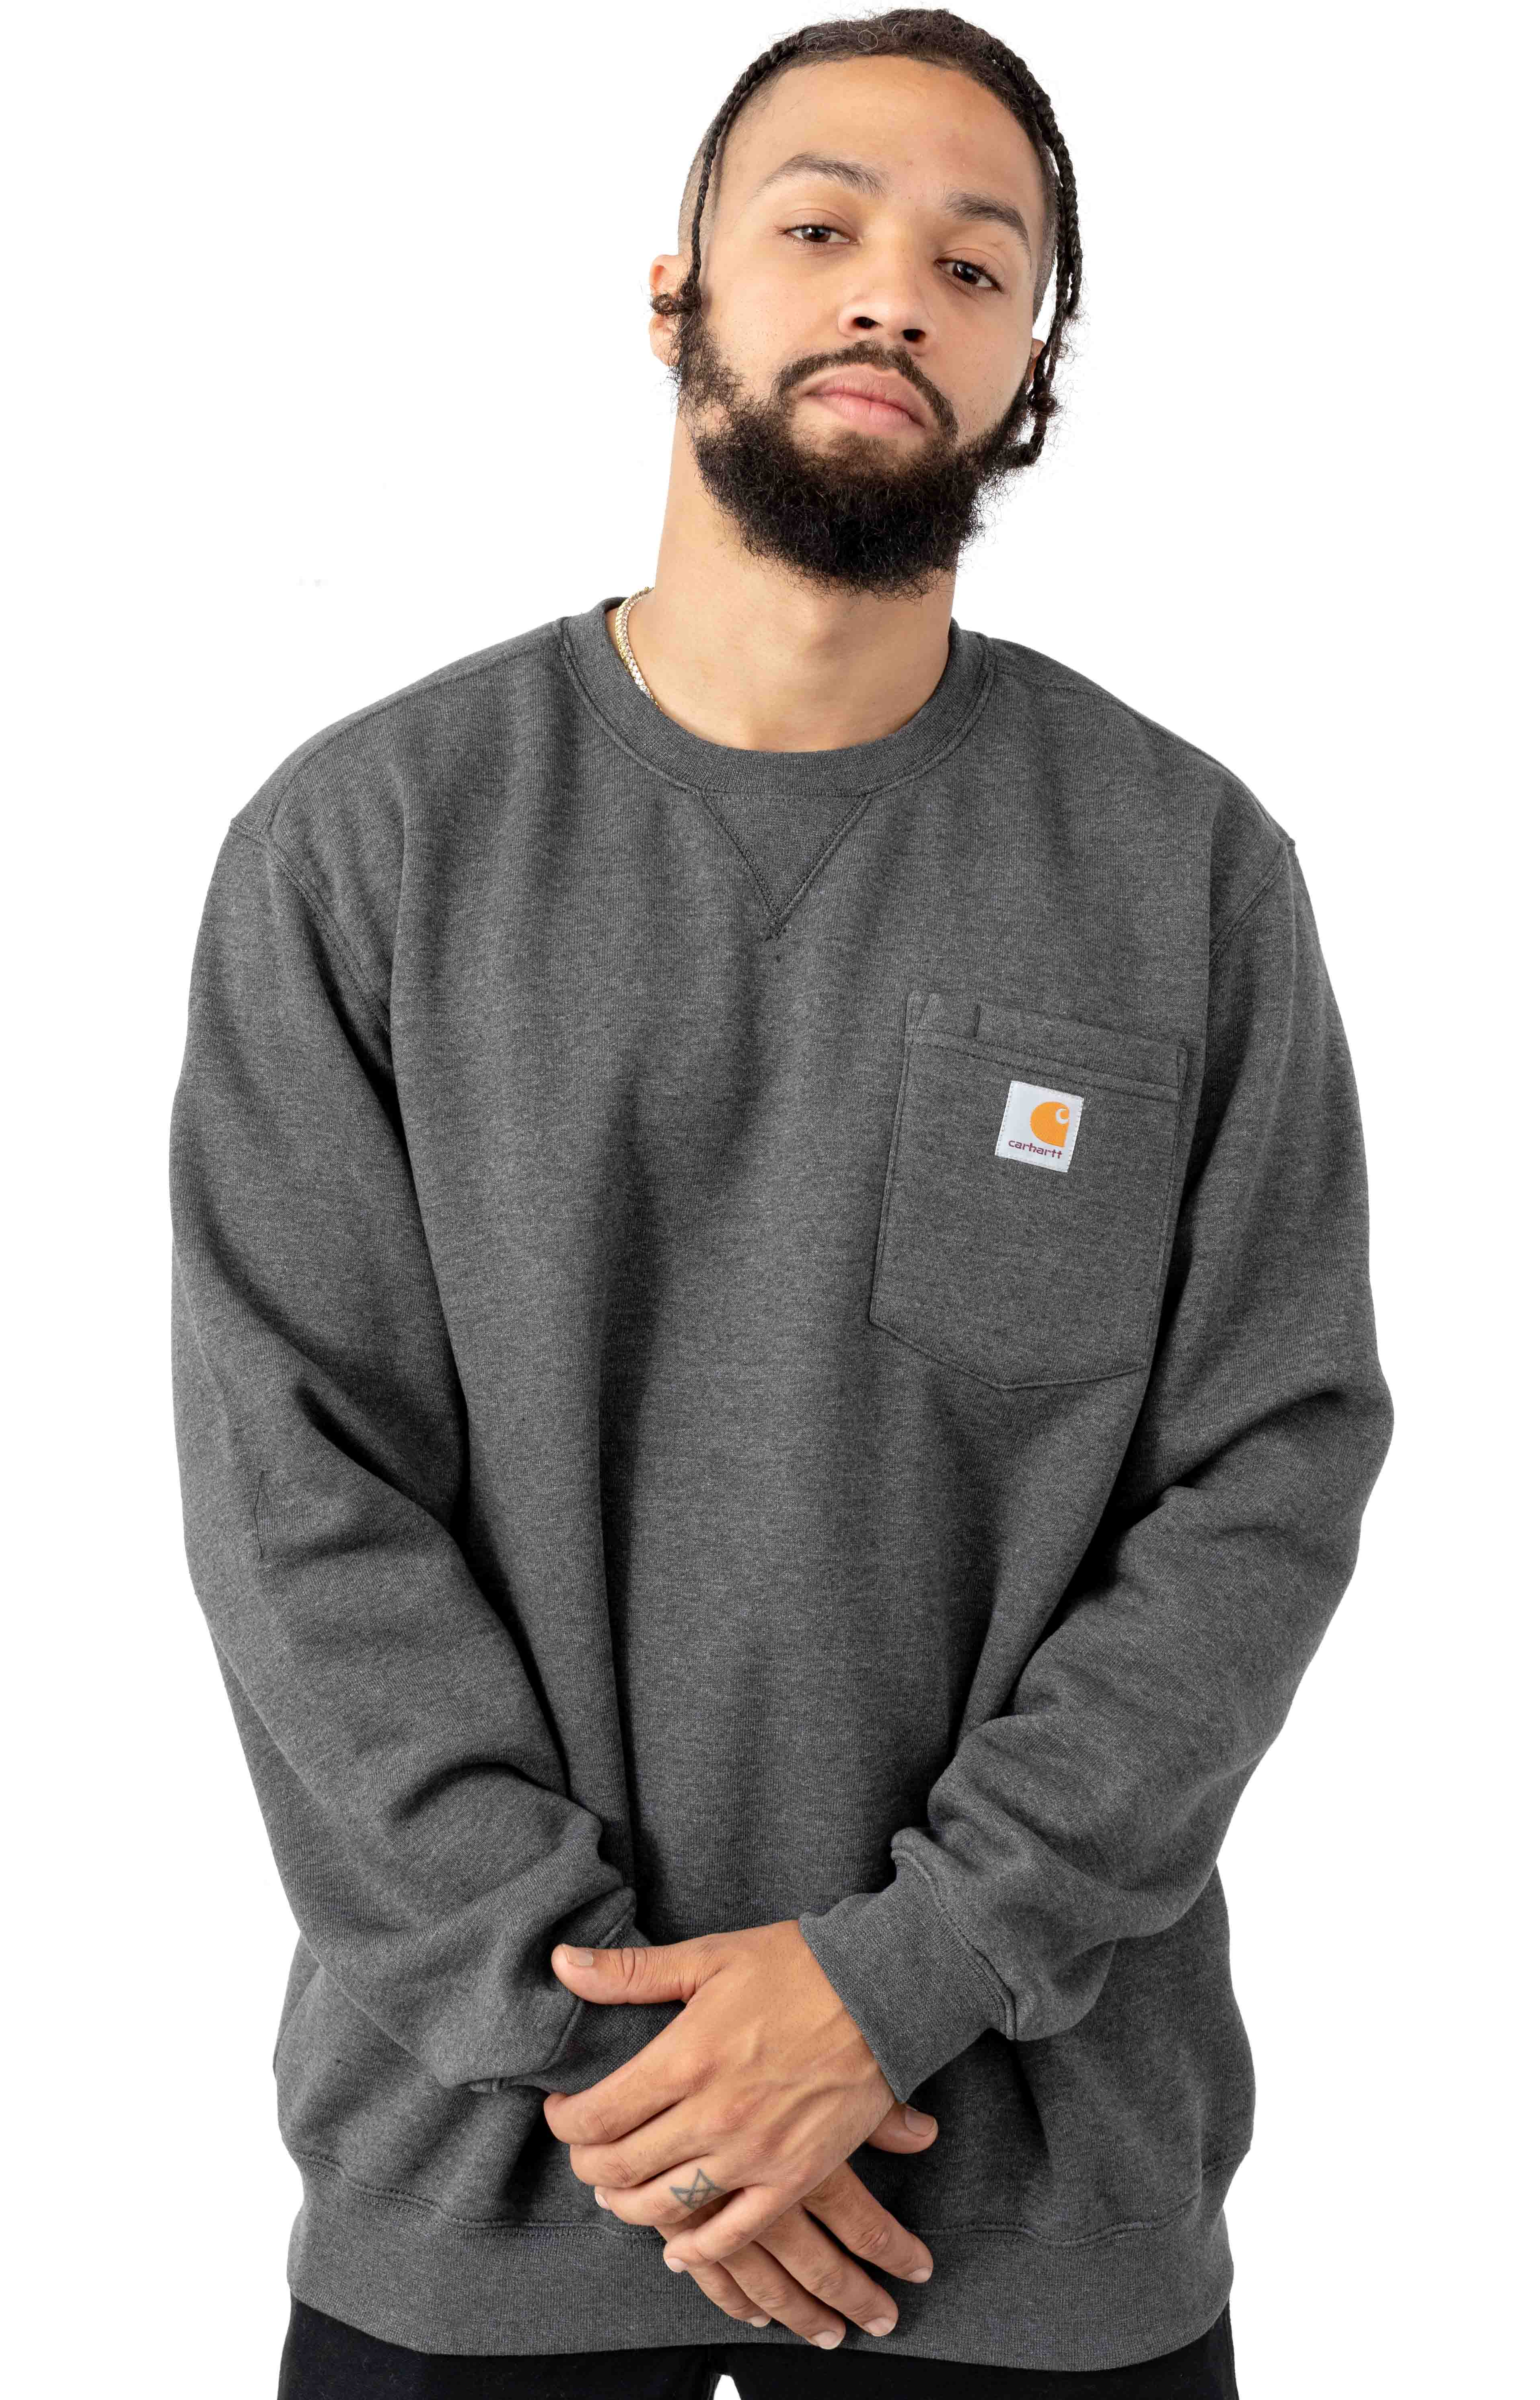 (103852) Crewneck Pocket Sweatshirt - Carbon Heather